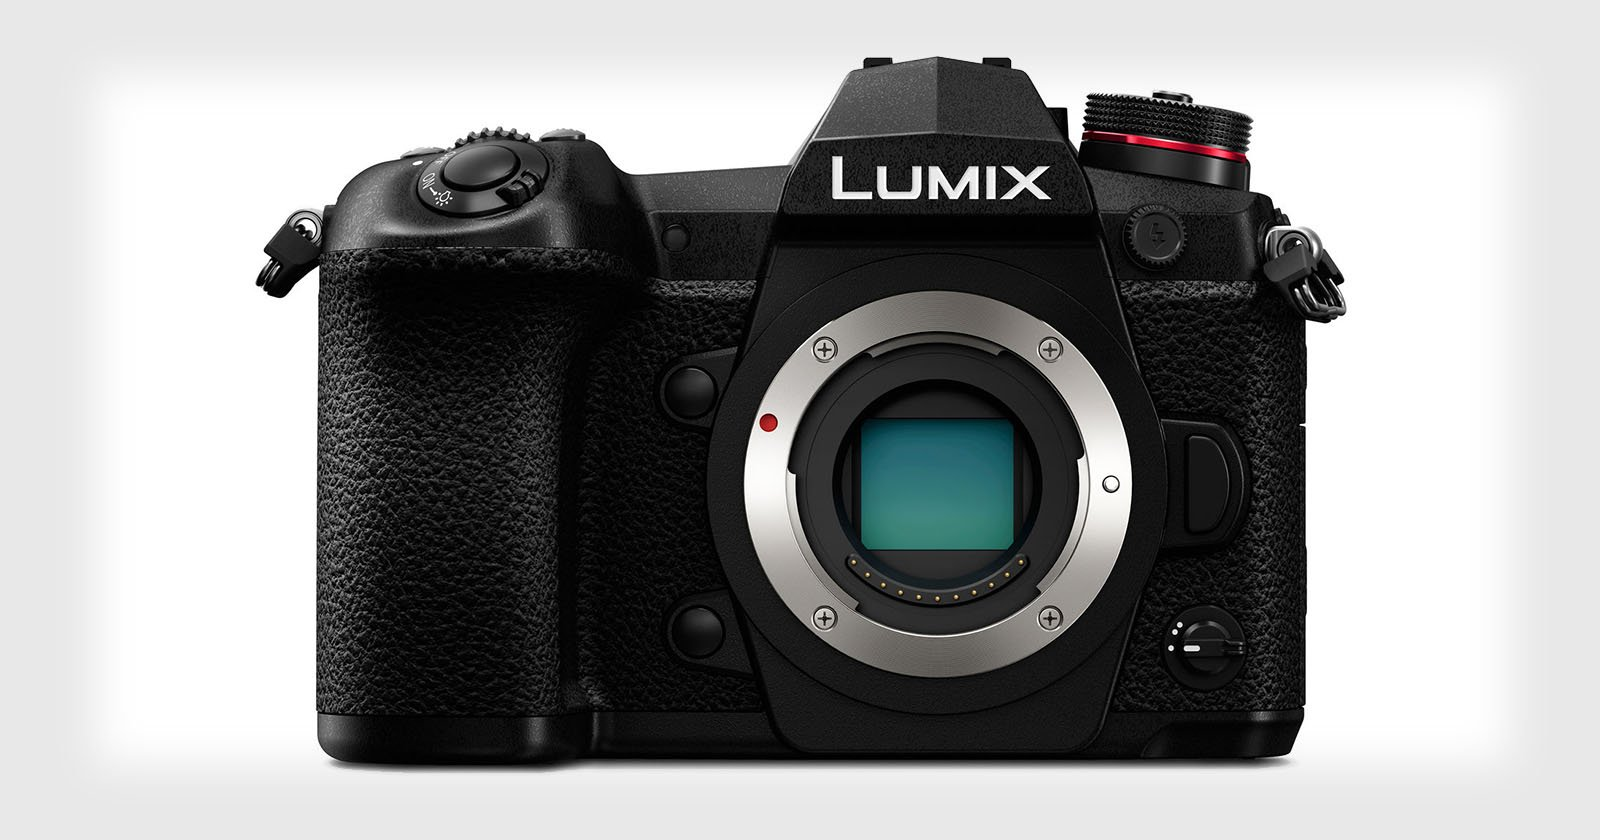 Panasonic Lumix G9: 80MP High-Res Mode and 6.5-Stop Stabilization